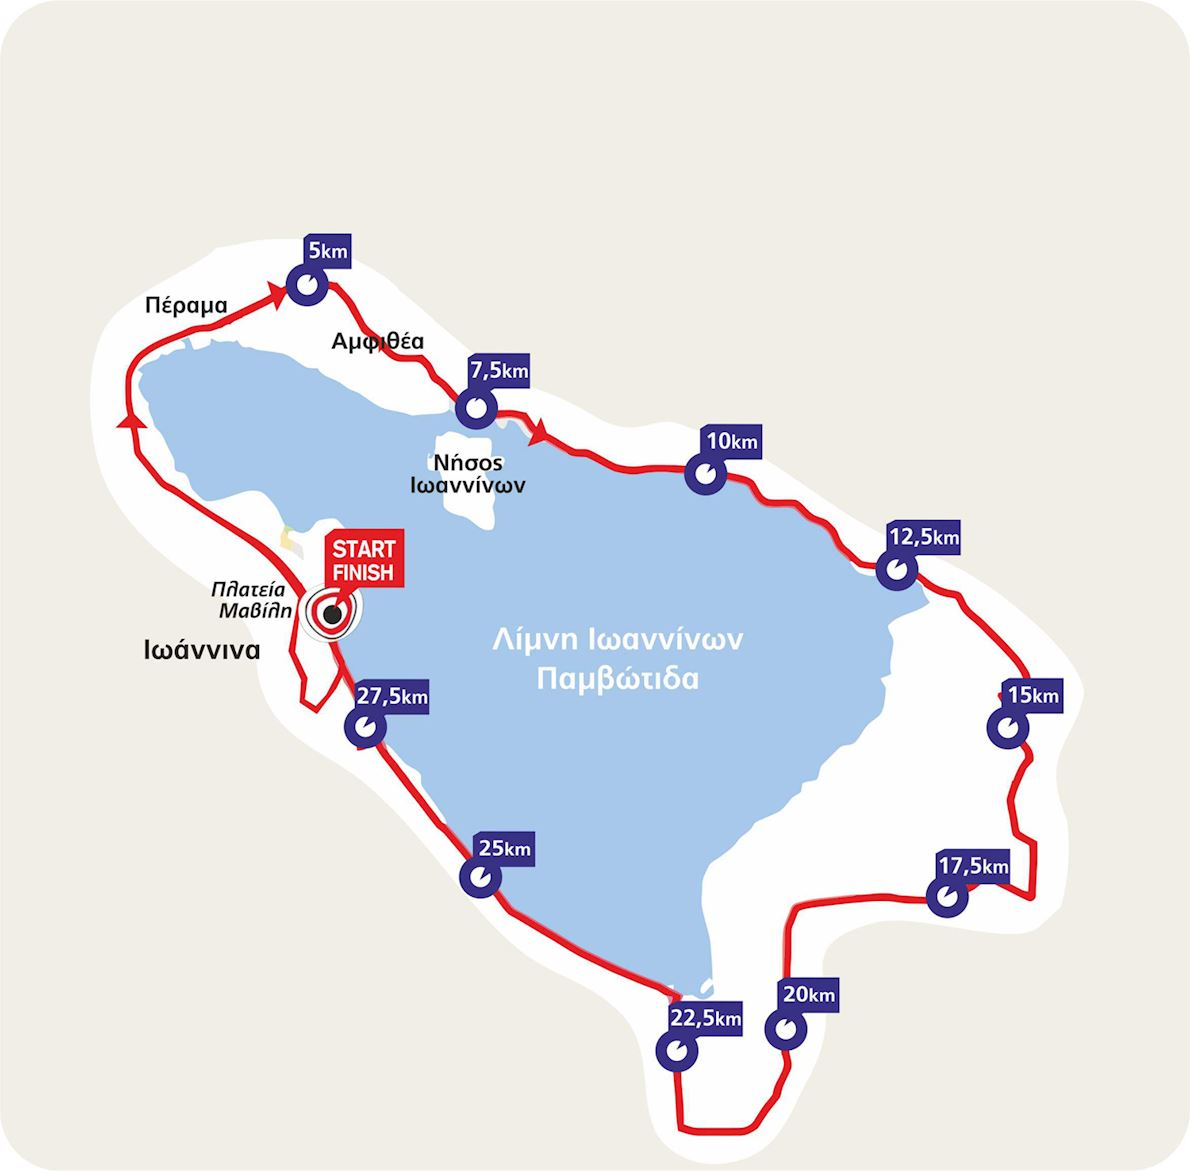 Ioannina Lake Run Route Map